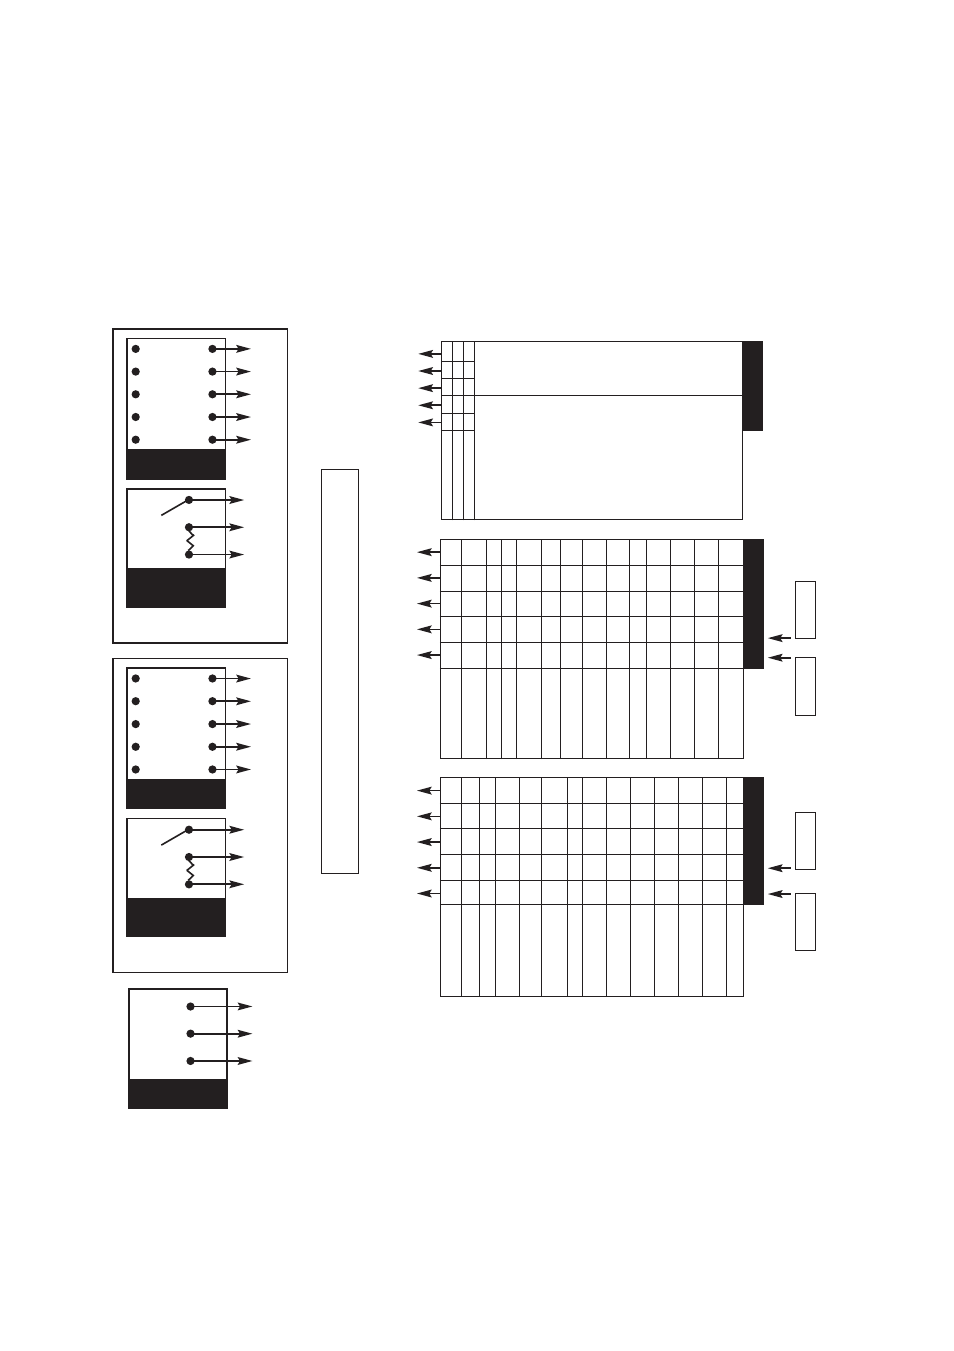 Switchmaster 400 Wiring Diagram